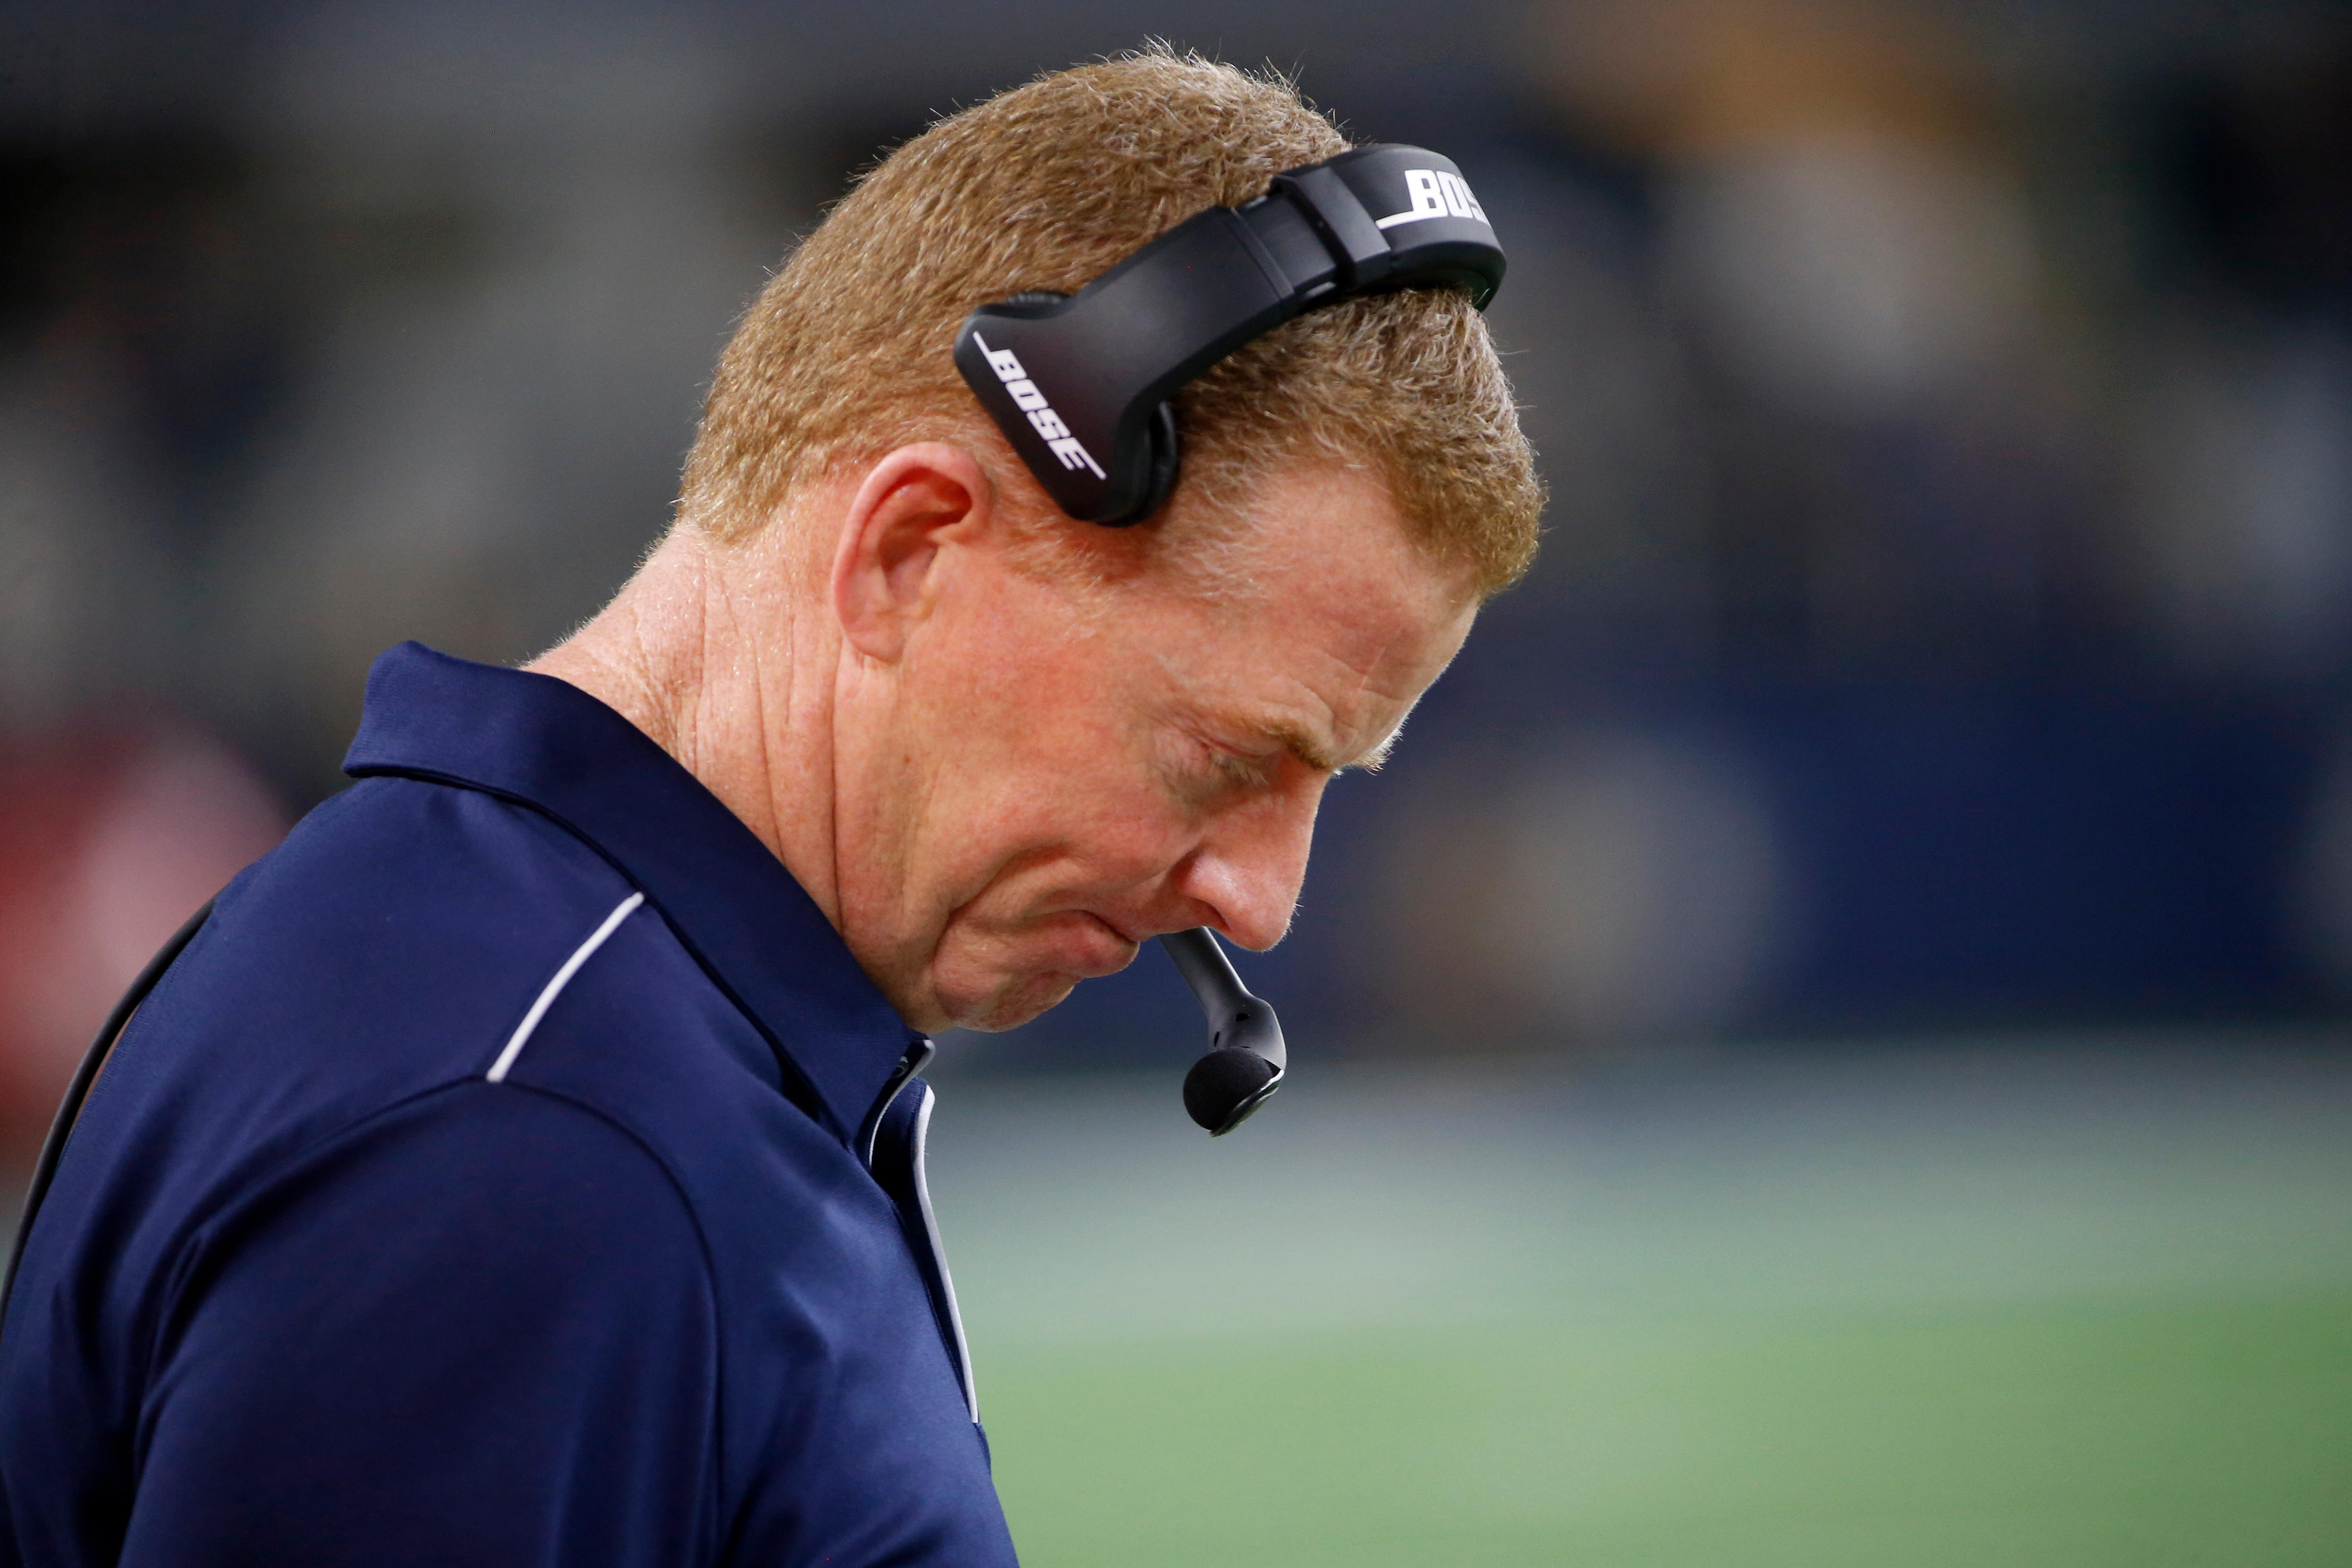 Dallas Cowboys head coach Jason Garrett stands on the sideline in the second half of an NFL football game against the Dallas Cowboys in Arlington, Texas, Thursday, Nov. 28, 2019. (AP Photo/Ron Jenkins)